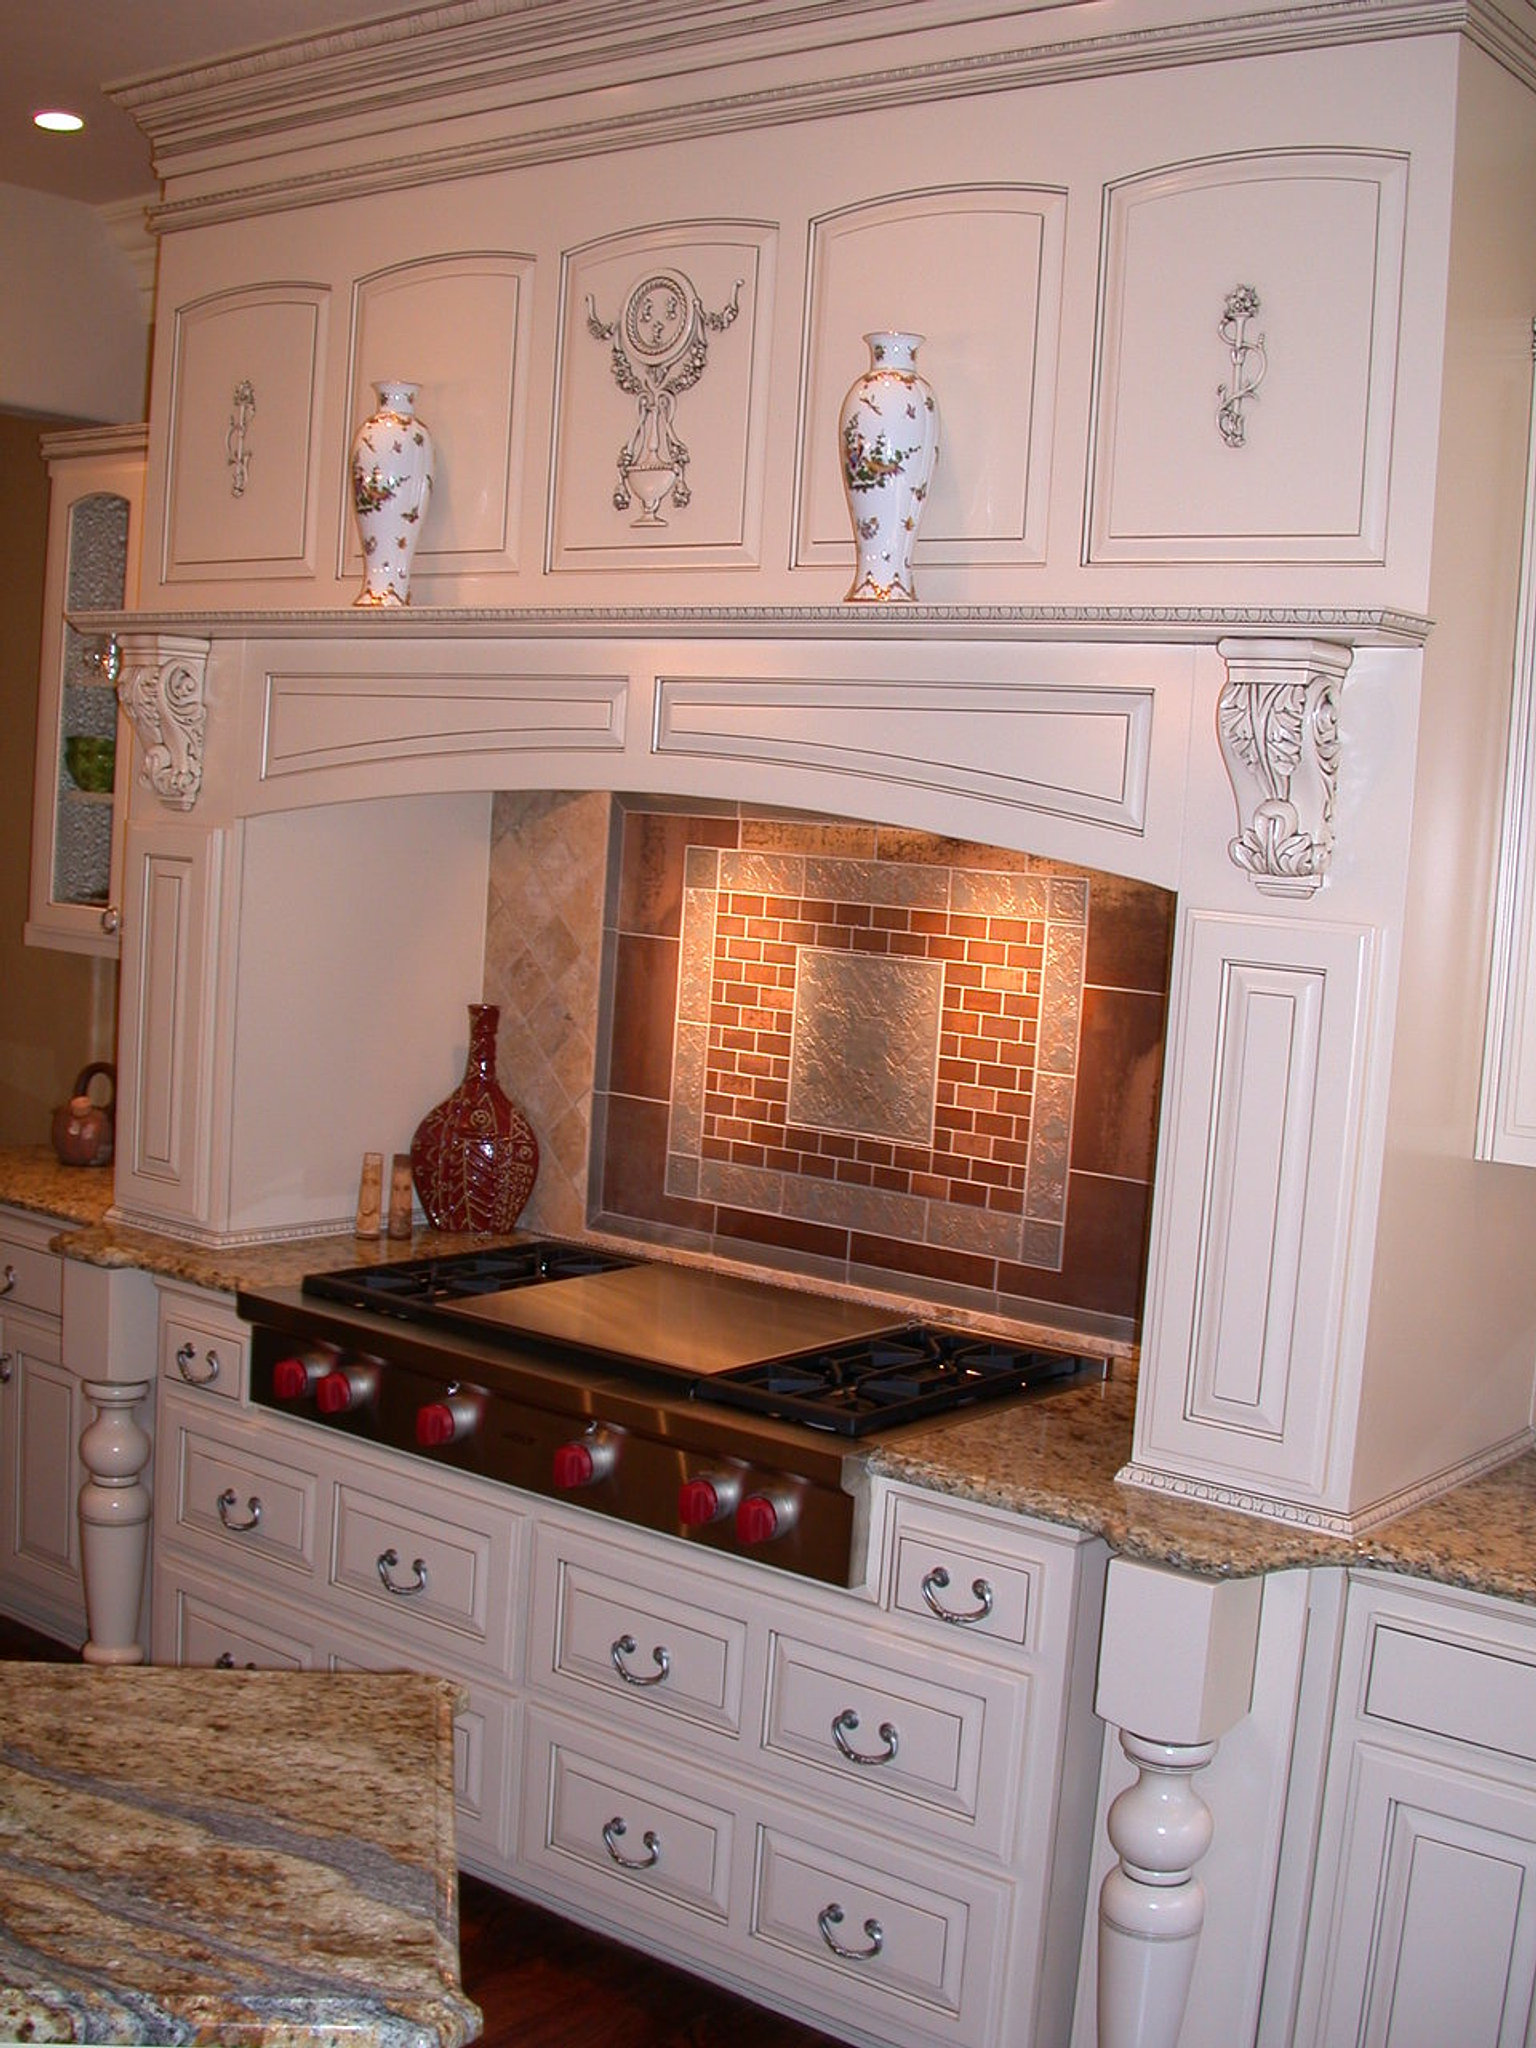 Kitchen Fireplace For Cooking Tulsa Home Remodeling Tulsatulsa Home Remodeling Stacy Cooking